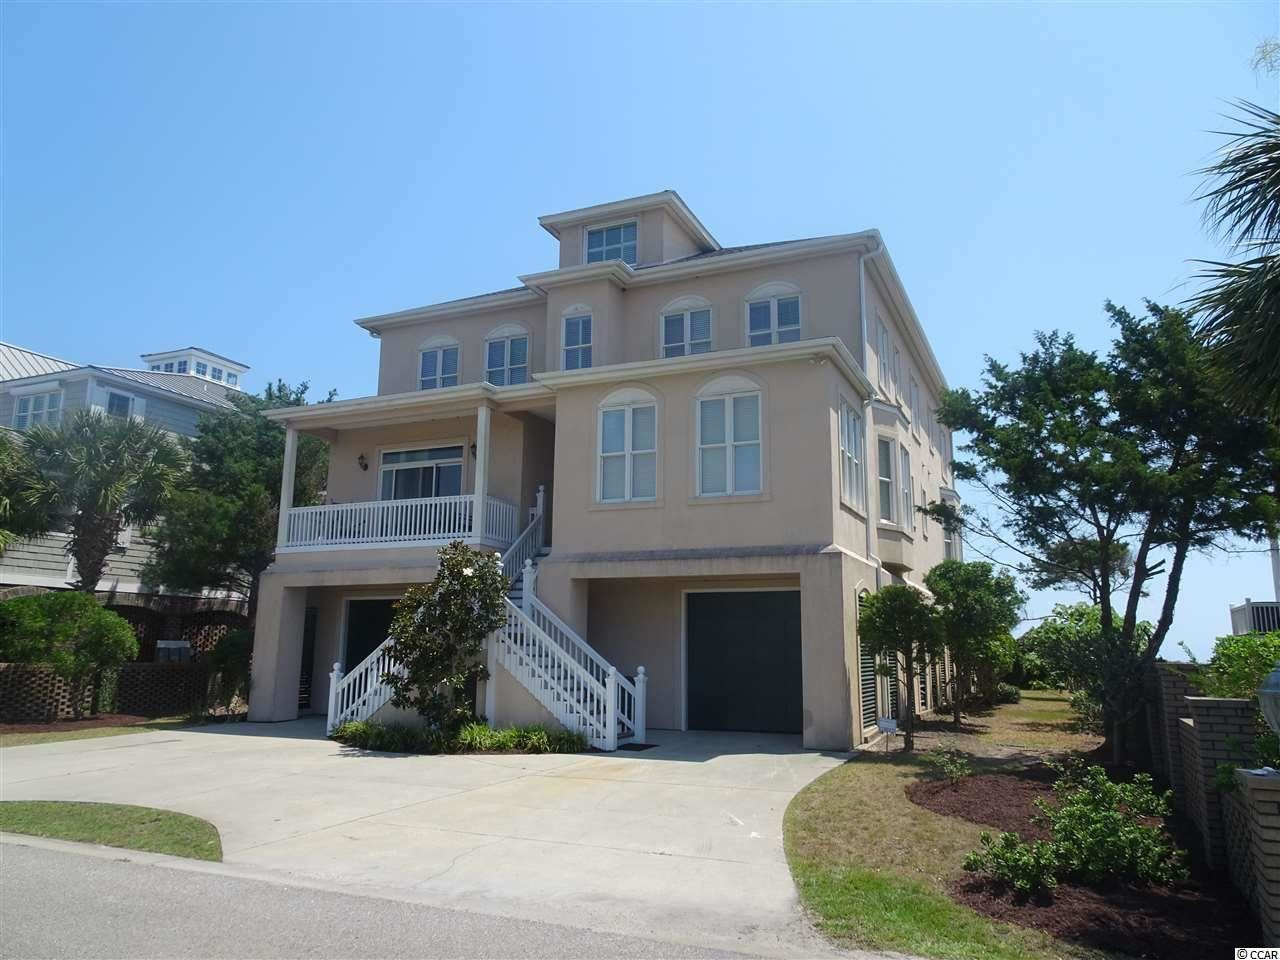 985 Norris Dr., Pawleys Island, SC, 29585, The Peninsula at Inlet Point Home For Sale